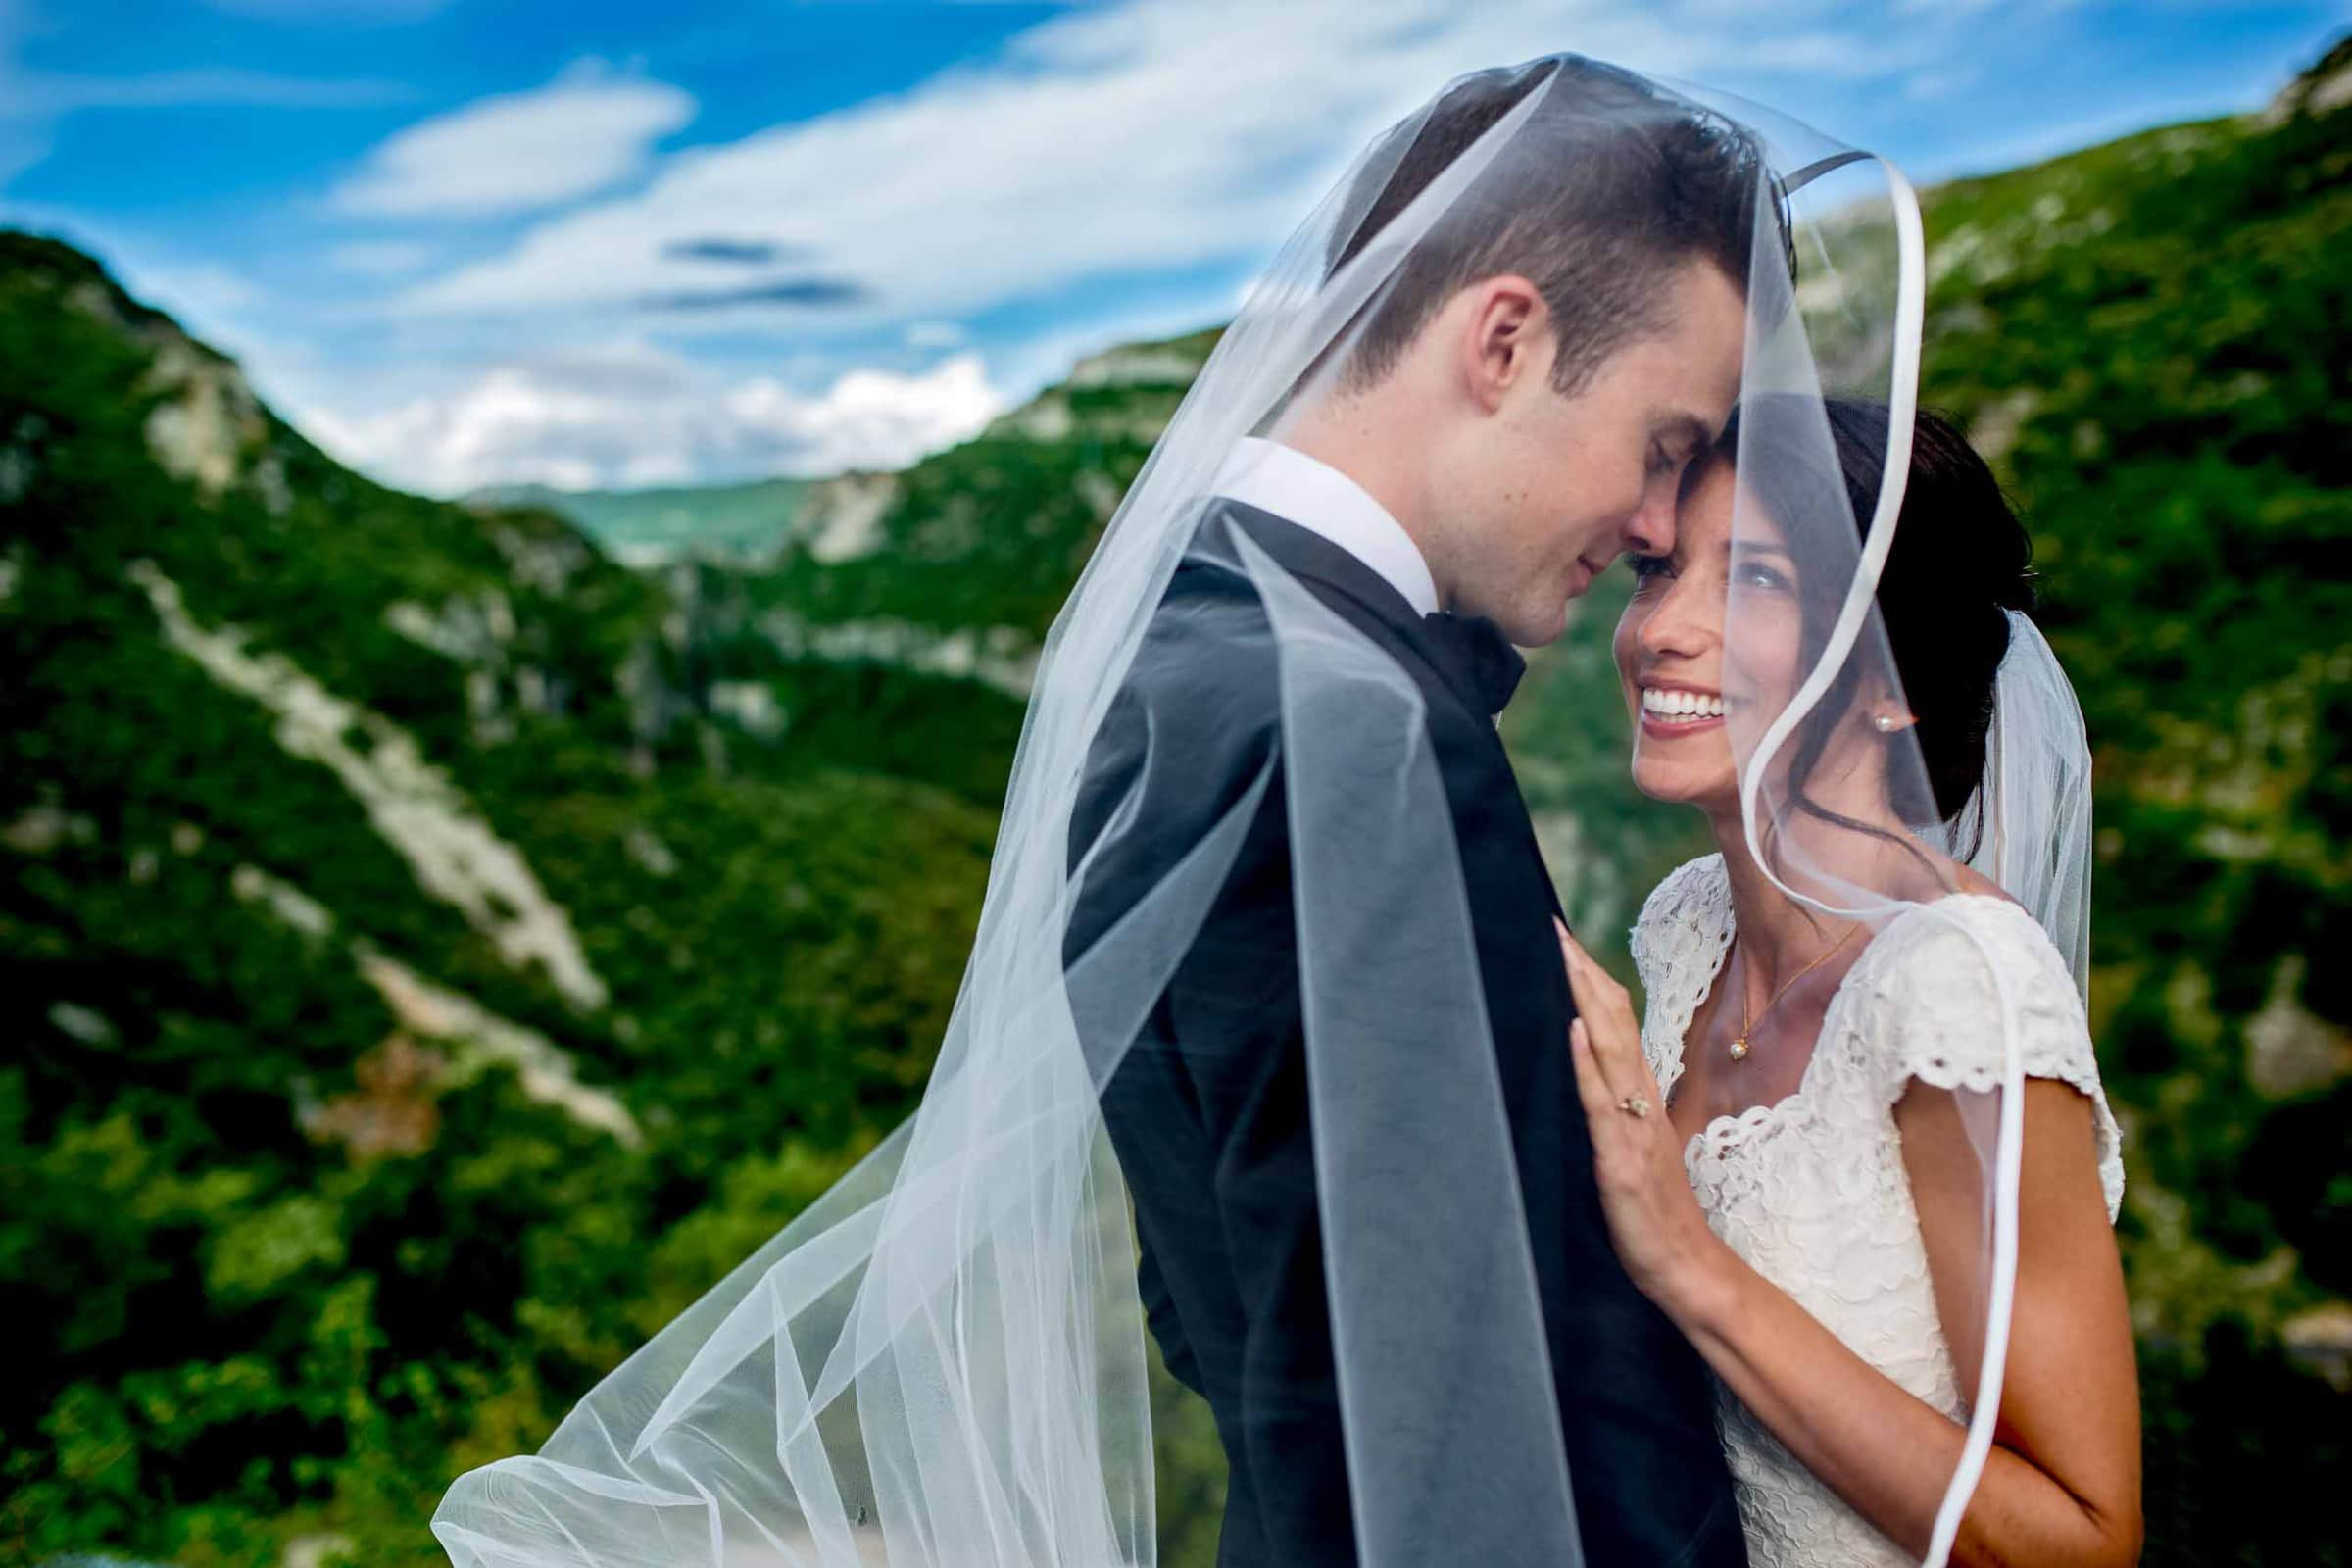 Happy bride and groom photo in the mountains following their Chateau Zen wedding in the South of France near Montepelier.